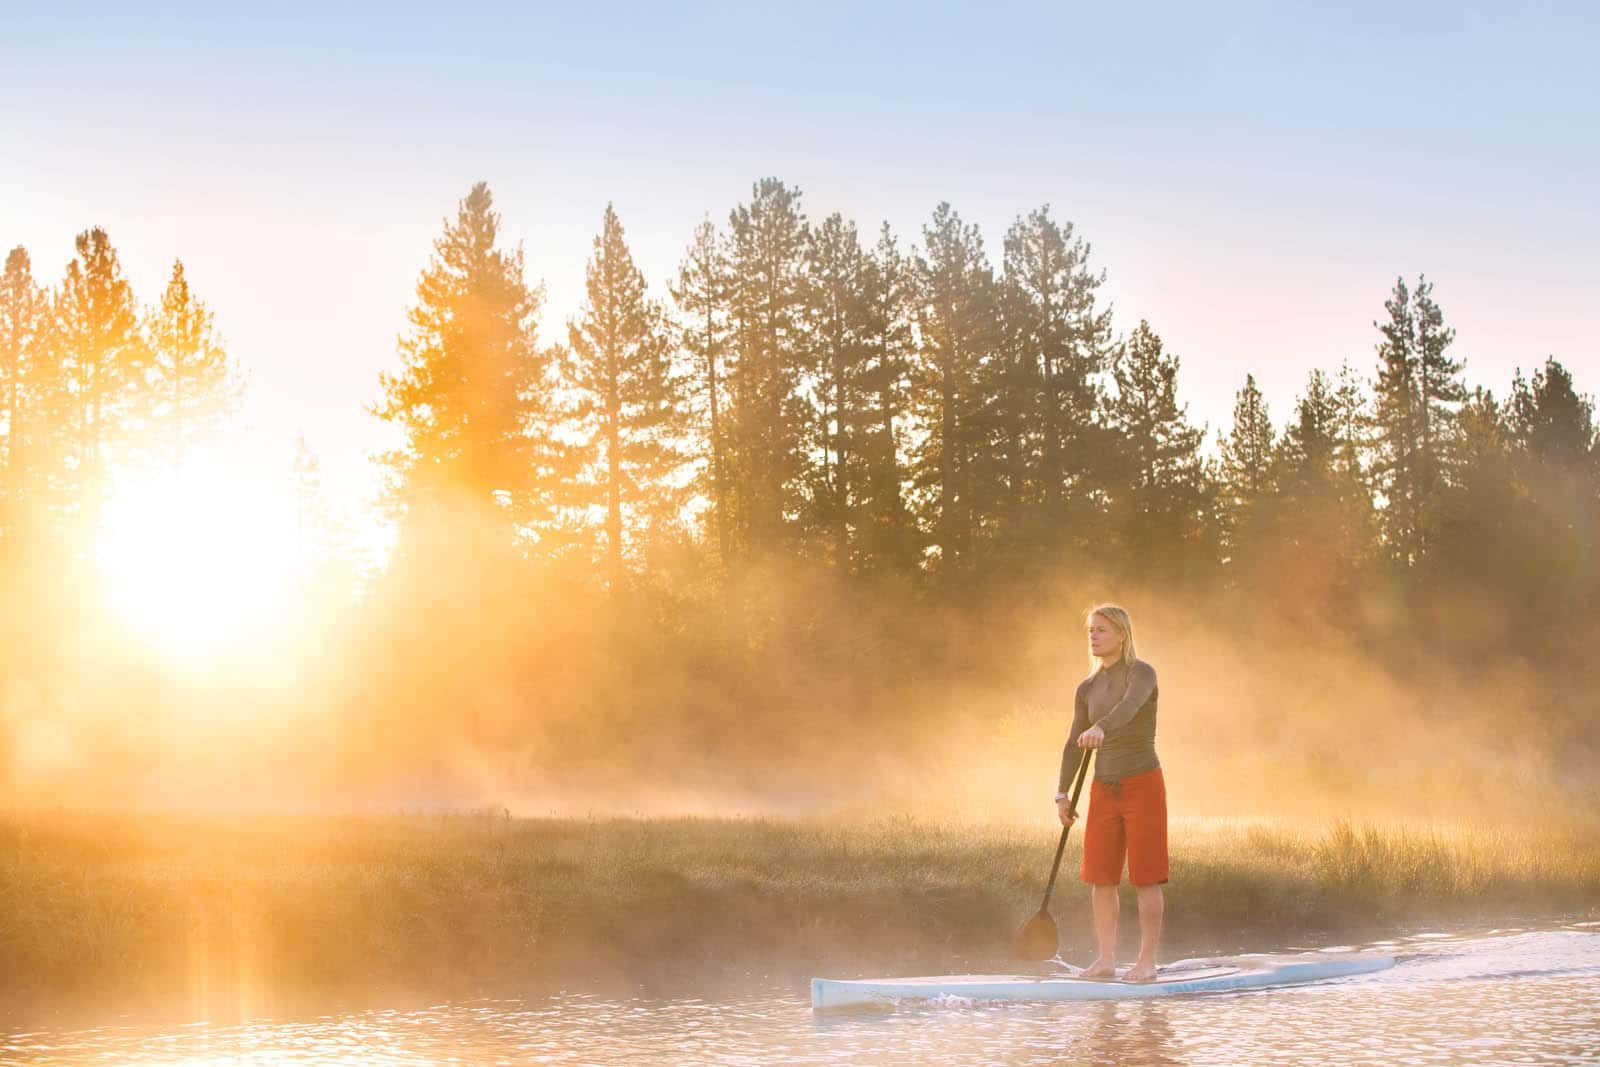 Lel Tone enjoying an early morning paddle on Lake Tahoe.